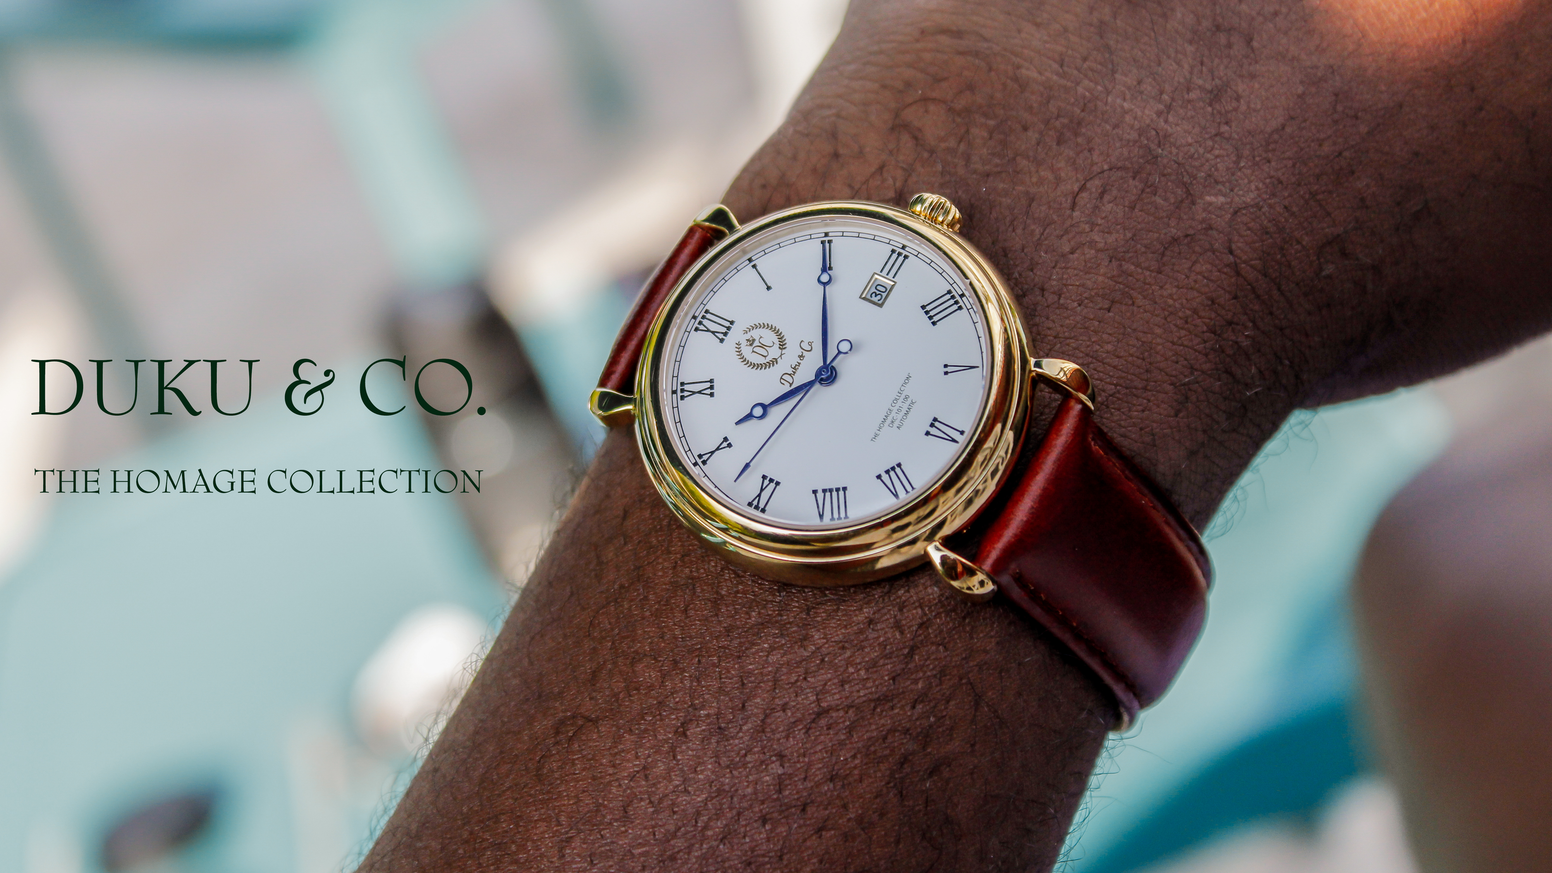 Watch Brand focused on providing elegant automatic timepieces to the people.